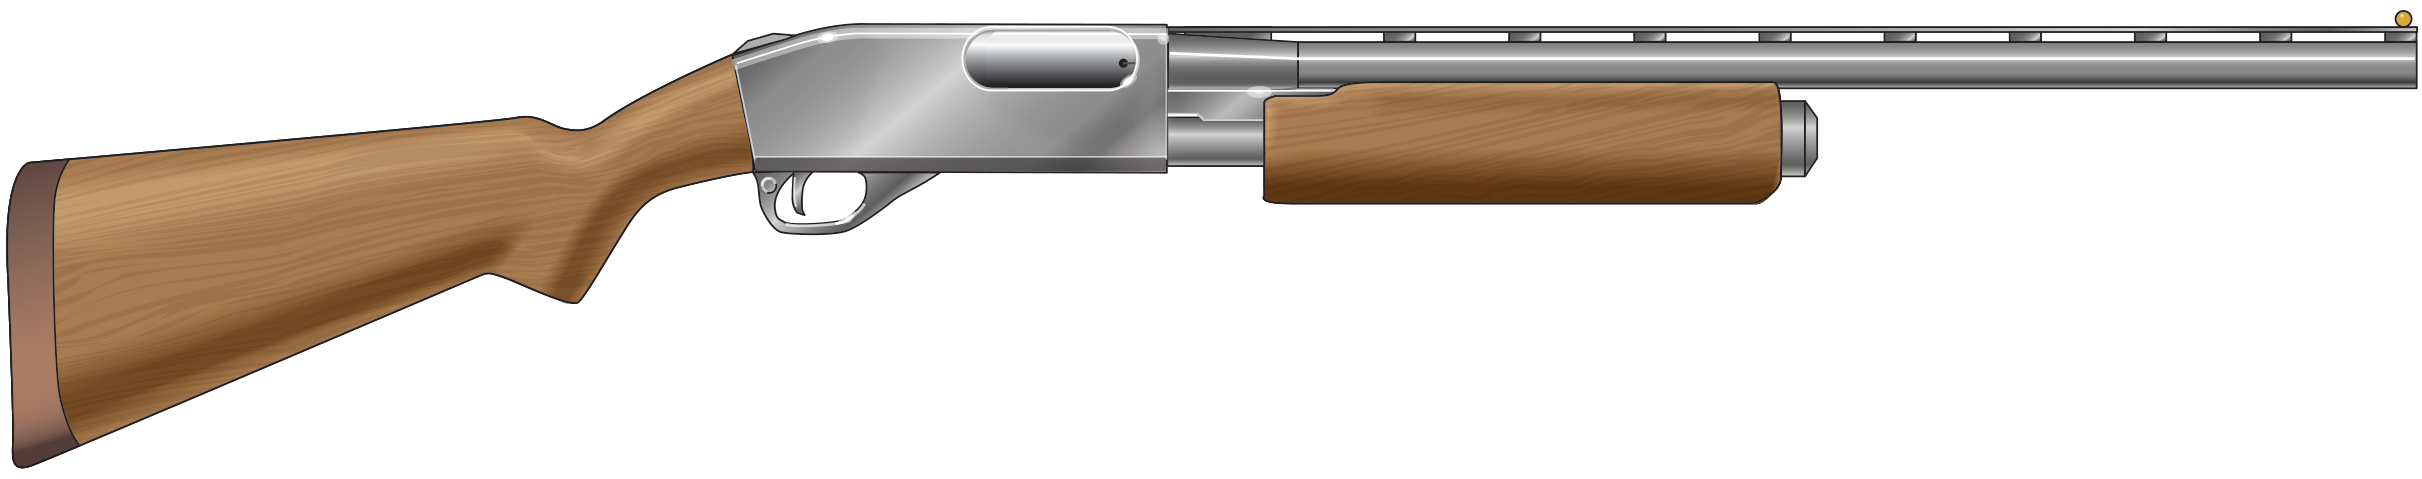 Hunting clipart shell shotgun. Png images free download